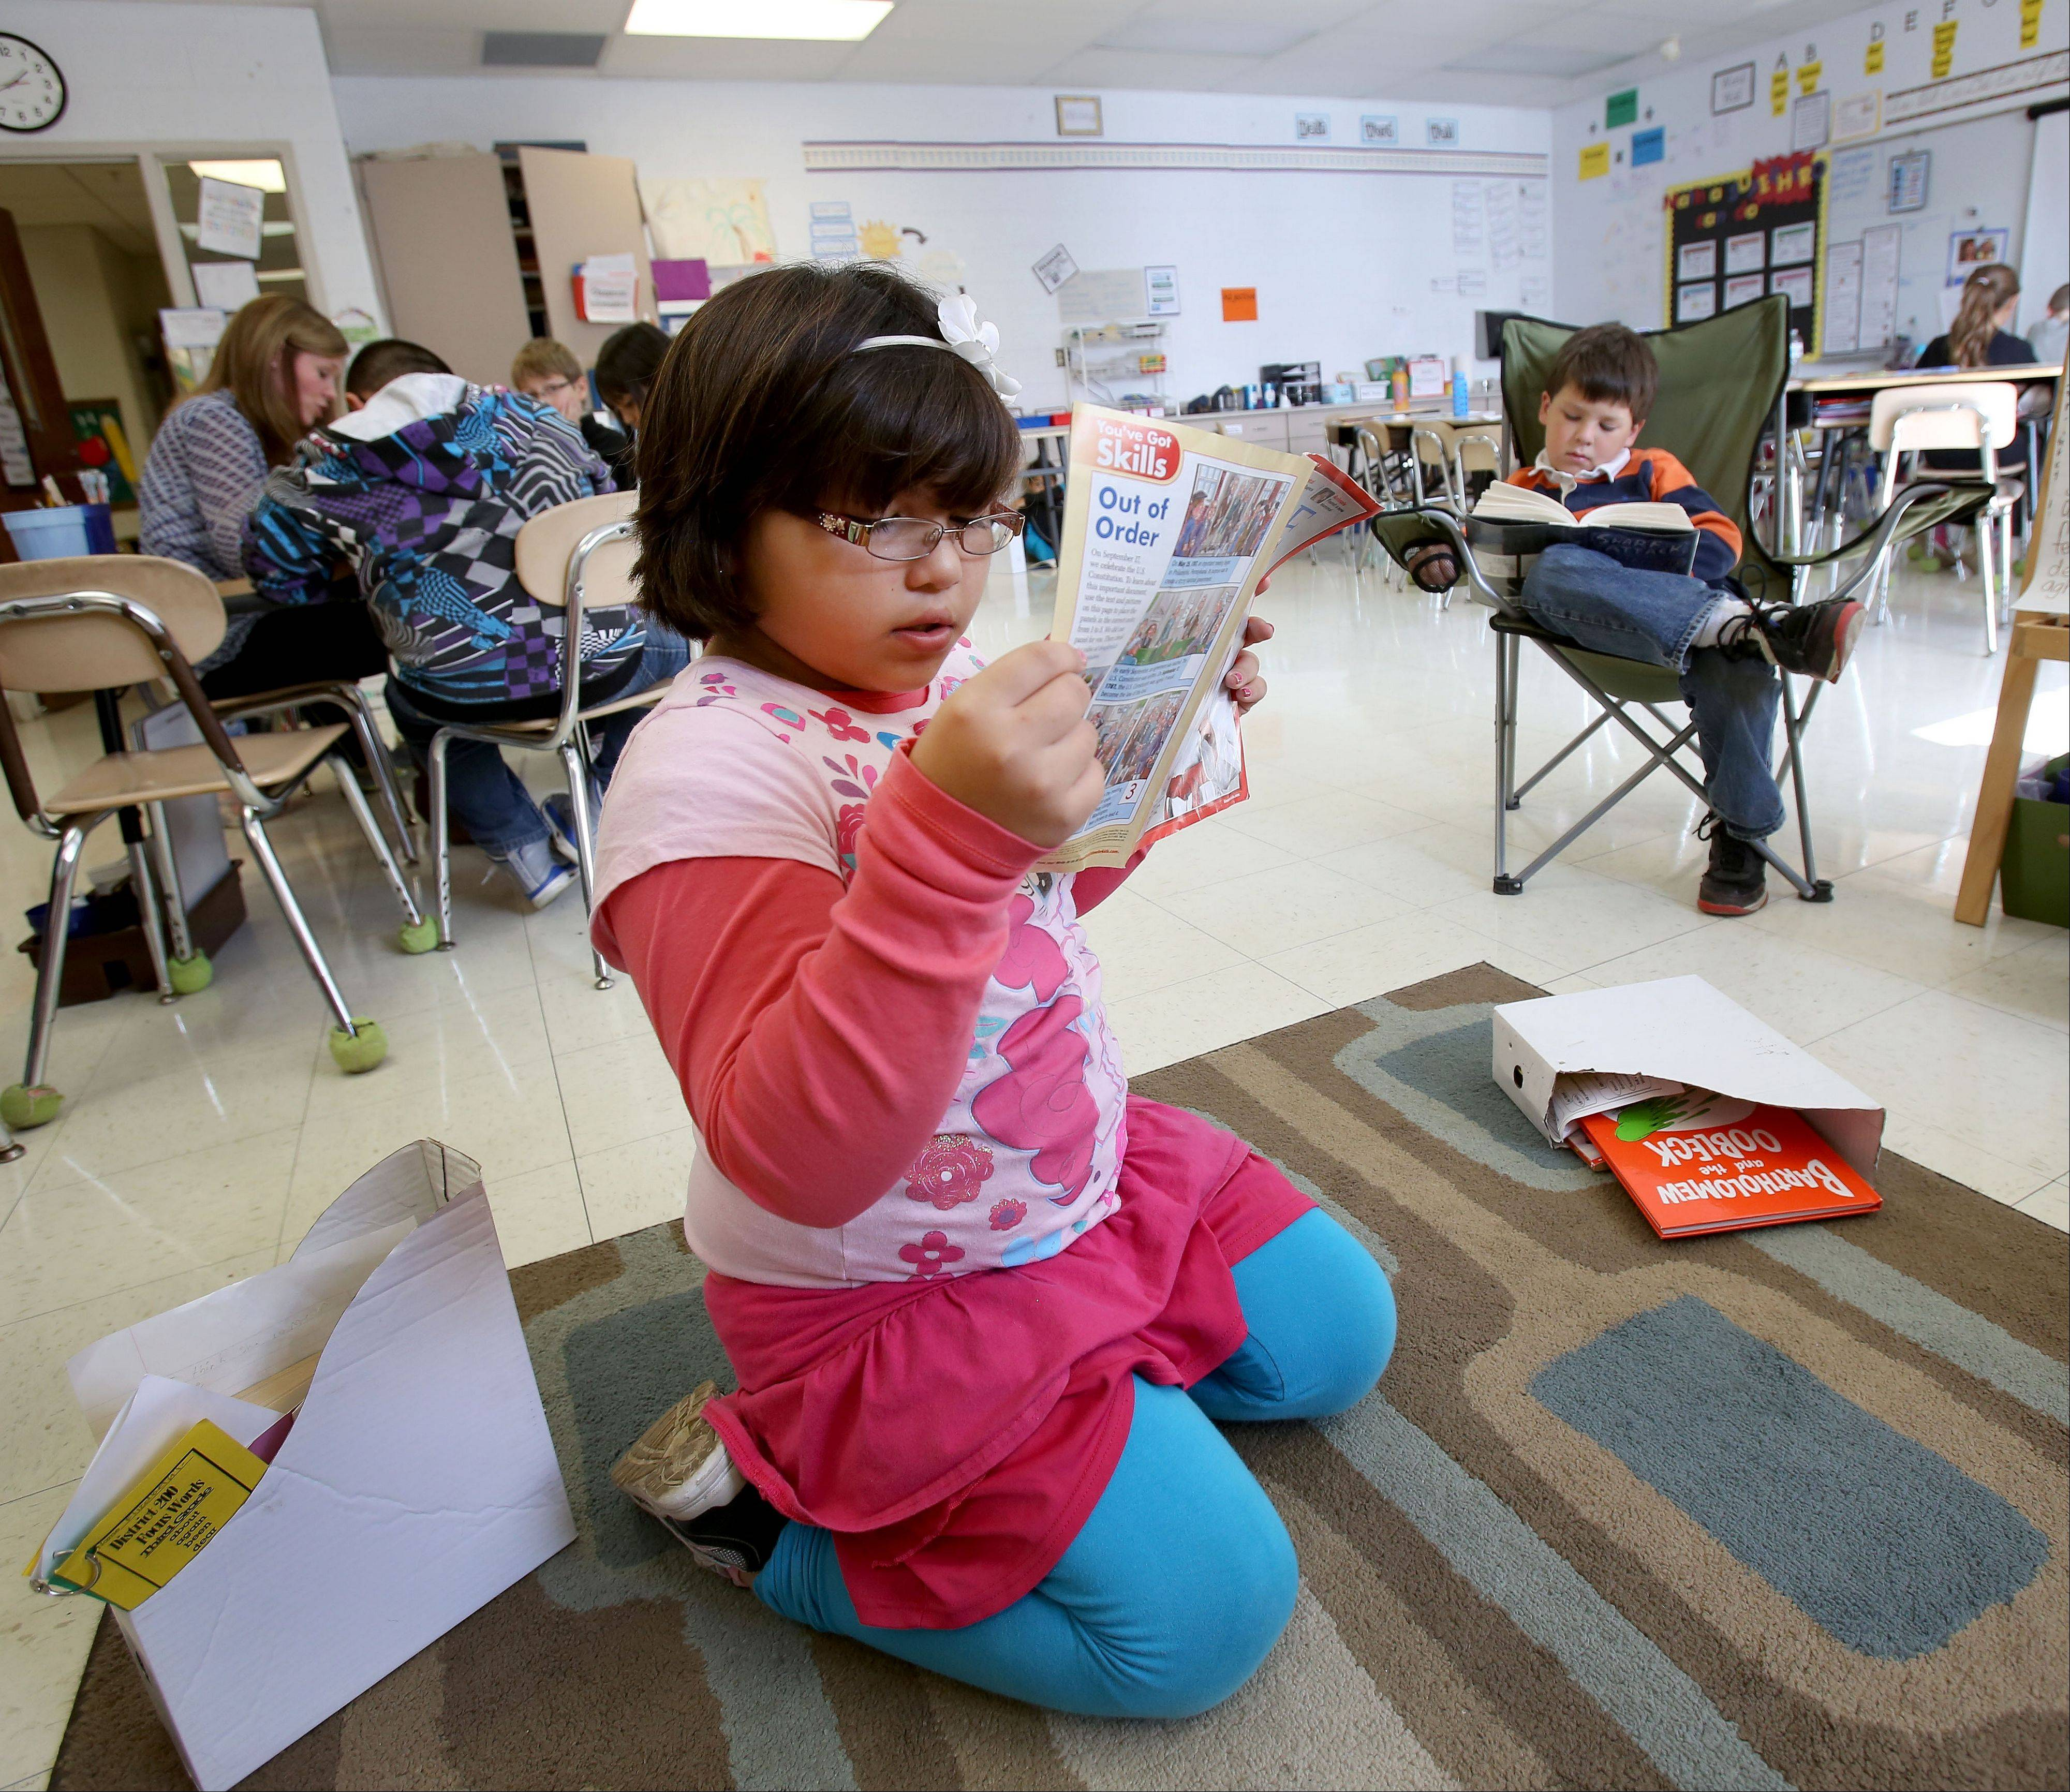 Elizabeth Torres, left, and Teddy Ritchie, right, find good reading spots in their third-grade classroom at Longfellow Elementary in Wheaton. It is one of the schools that saw the smallest point decrease in the percent of students who meet or exceed state standards in the first year the cutoff score to qualify as meeting standards was raised.